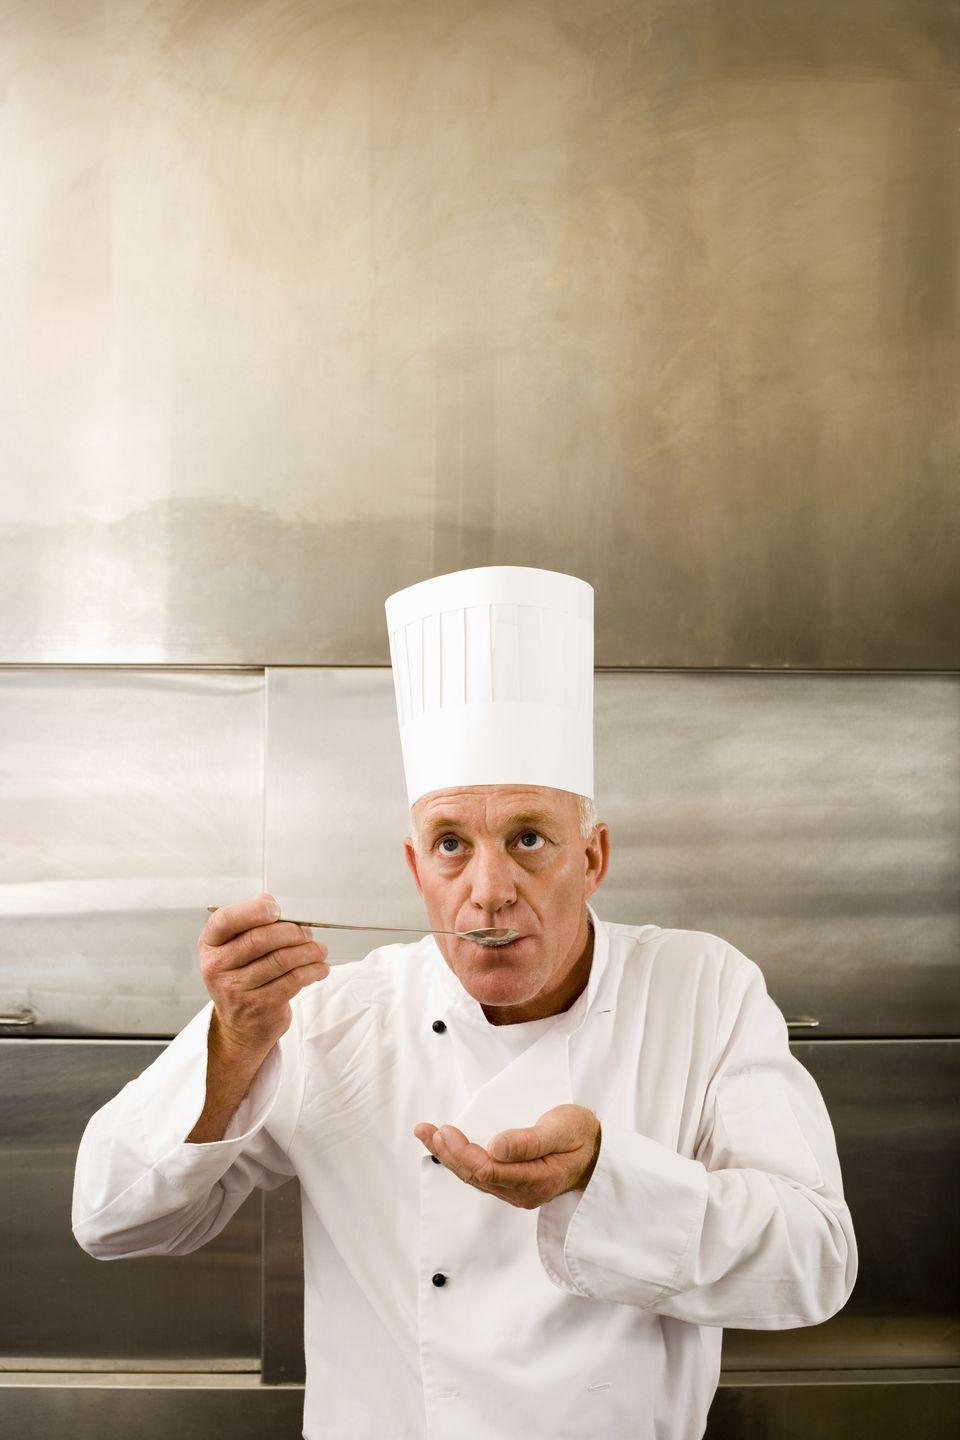 "<p>Yes, that tall, pleated white hat that chefs wear — technically called a <em>toque — </em>has 100 folds for a reason! According to <a href=""https://www.reluctantgourmet.com/chef-hat-history/#context/api/listings/prefilter"" rel=""nofollow noopener"" target=""_blank"" data-ylk=""slk:Reclutant Gourmet"" class=""link rapid-noclick-resp"">Reclutant Gourmet</a>, the pleats used to signify a chef's level of experience, like the number of ways he or she knew how to prepare eggs. </p><p><strong>RELATED: </strong><a href=""https://www.goodhousekeeping.com/food-recipes/easy/g428/easy-egg-recipes/"" rel=""nofollow noopener"" target=""_blank"" data-ylk=""slk:45+ Easy Egg Recipes for Your Best Brunch Ever"" class=""link rapid-noclick-resp"">45+ Easy Egg Recipes for Your Best Brunch Ever</a><br></p>"